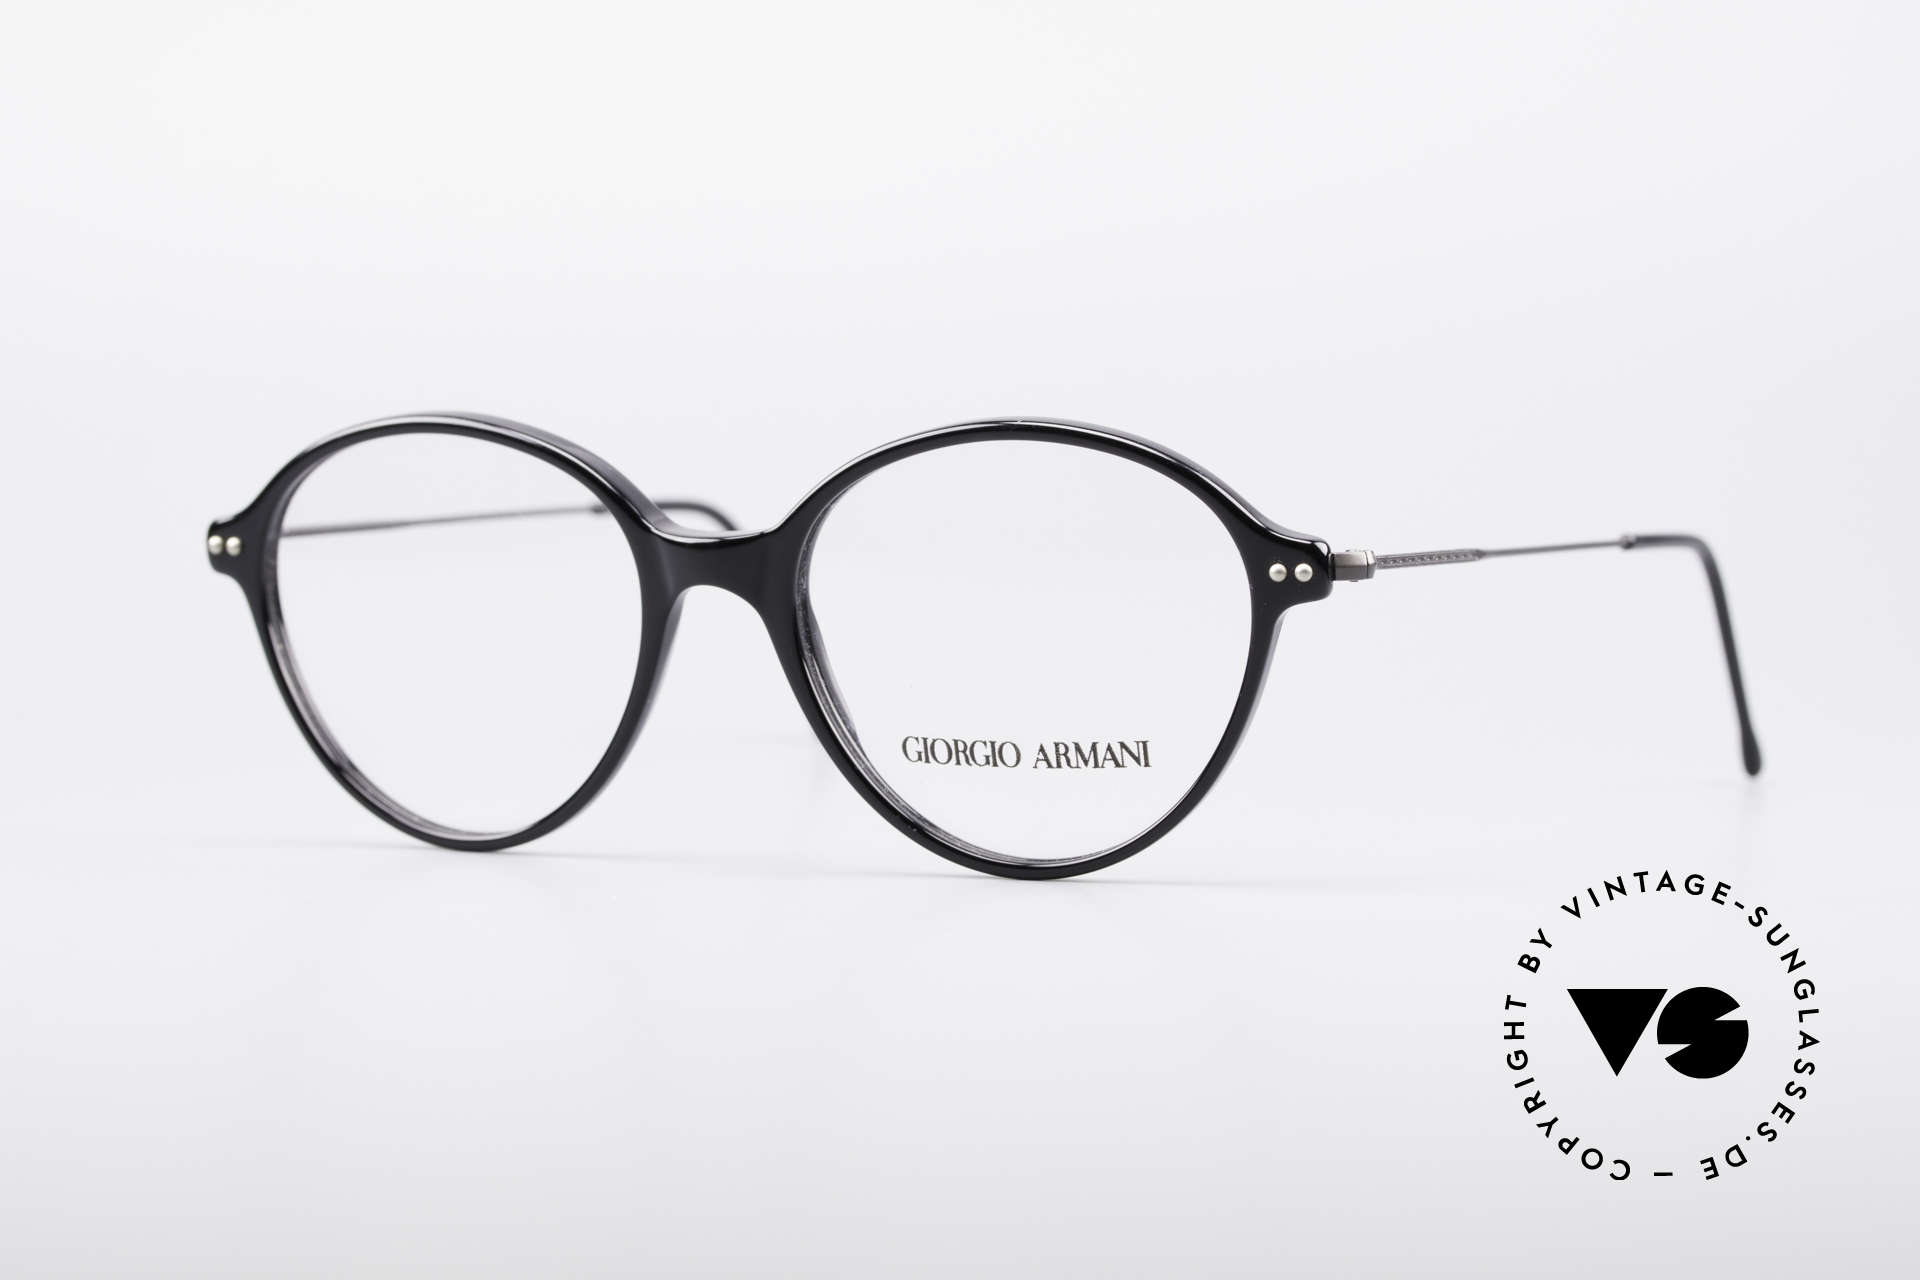 Giorgio Armani 374 90's Unisex Vintage Glasses, Giorgio Armani, Mod. 374, col. 181, Gr. 49-16, 140, Made for Men and Women